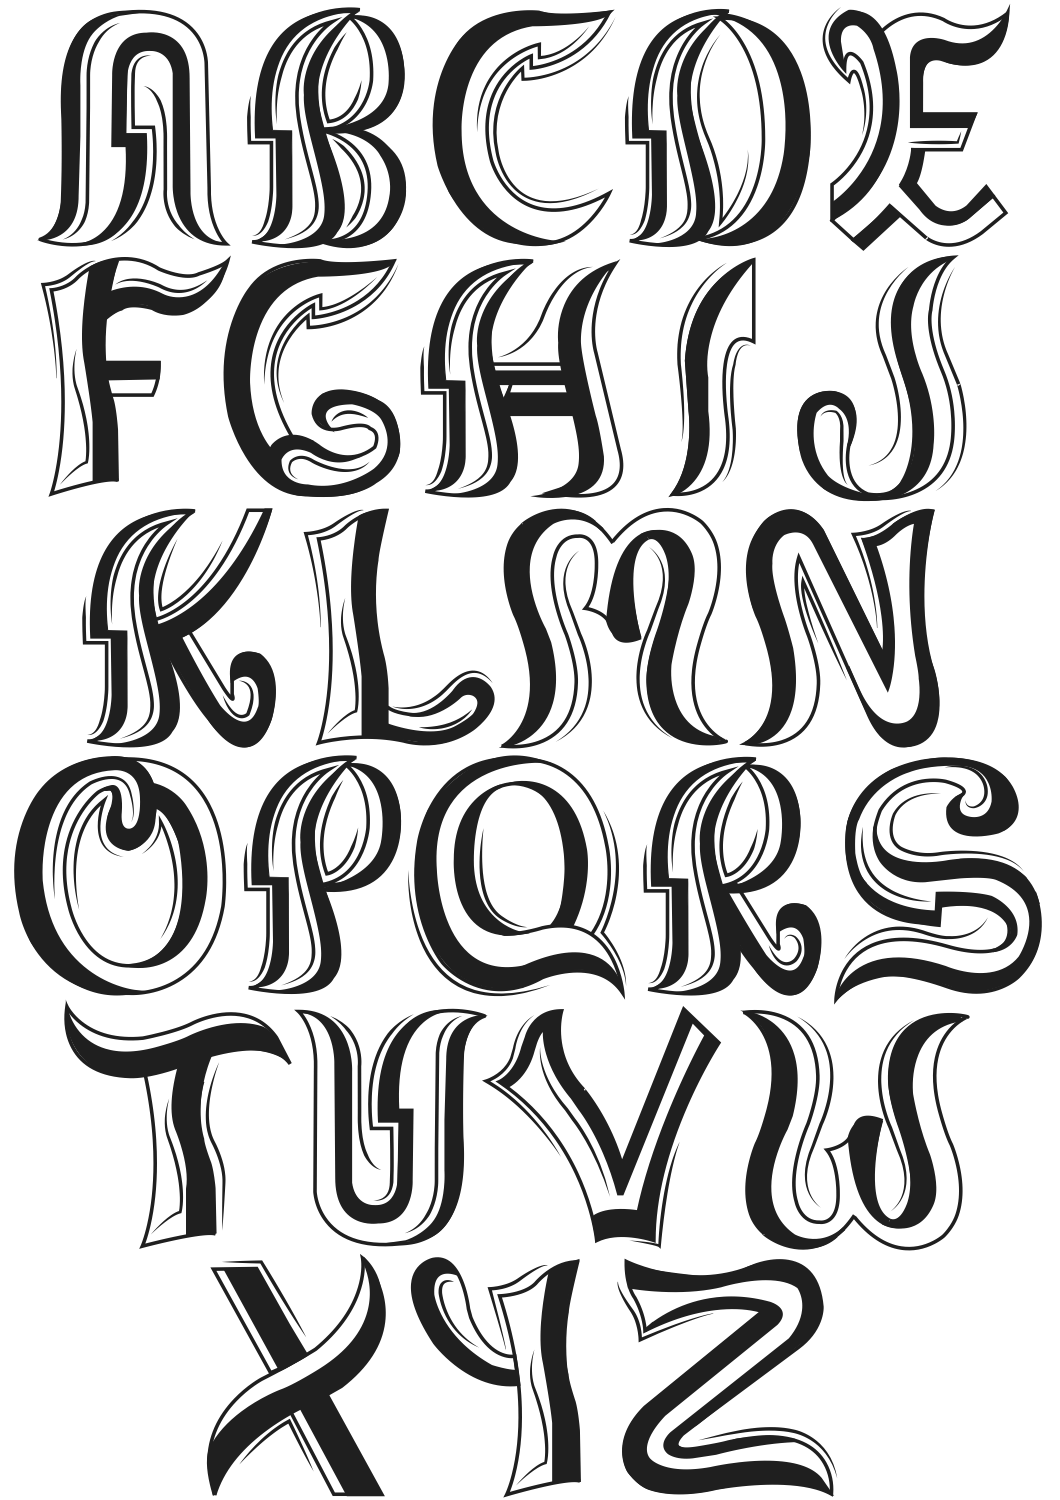 Typographic drawing black and white. Typography iqra i duplicated